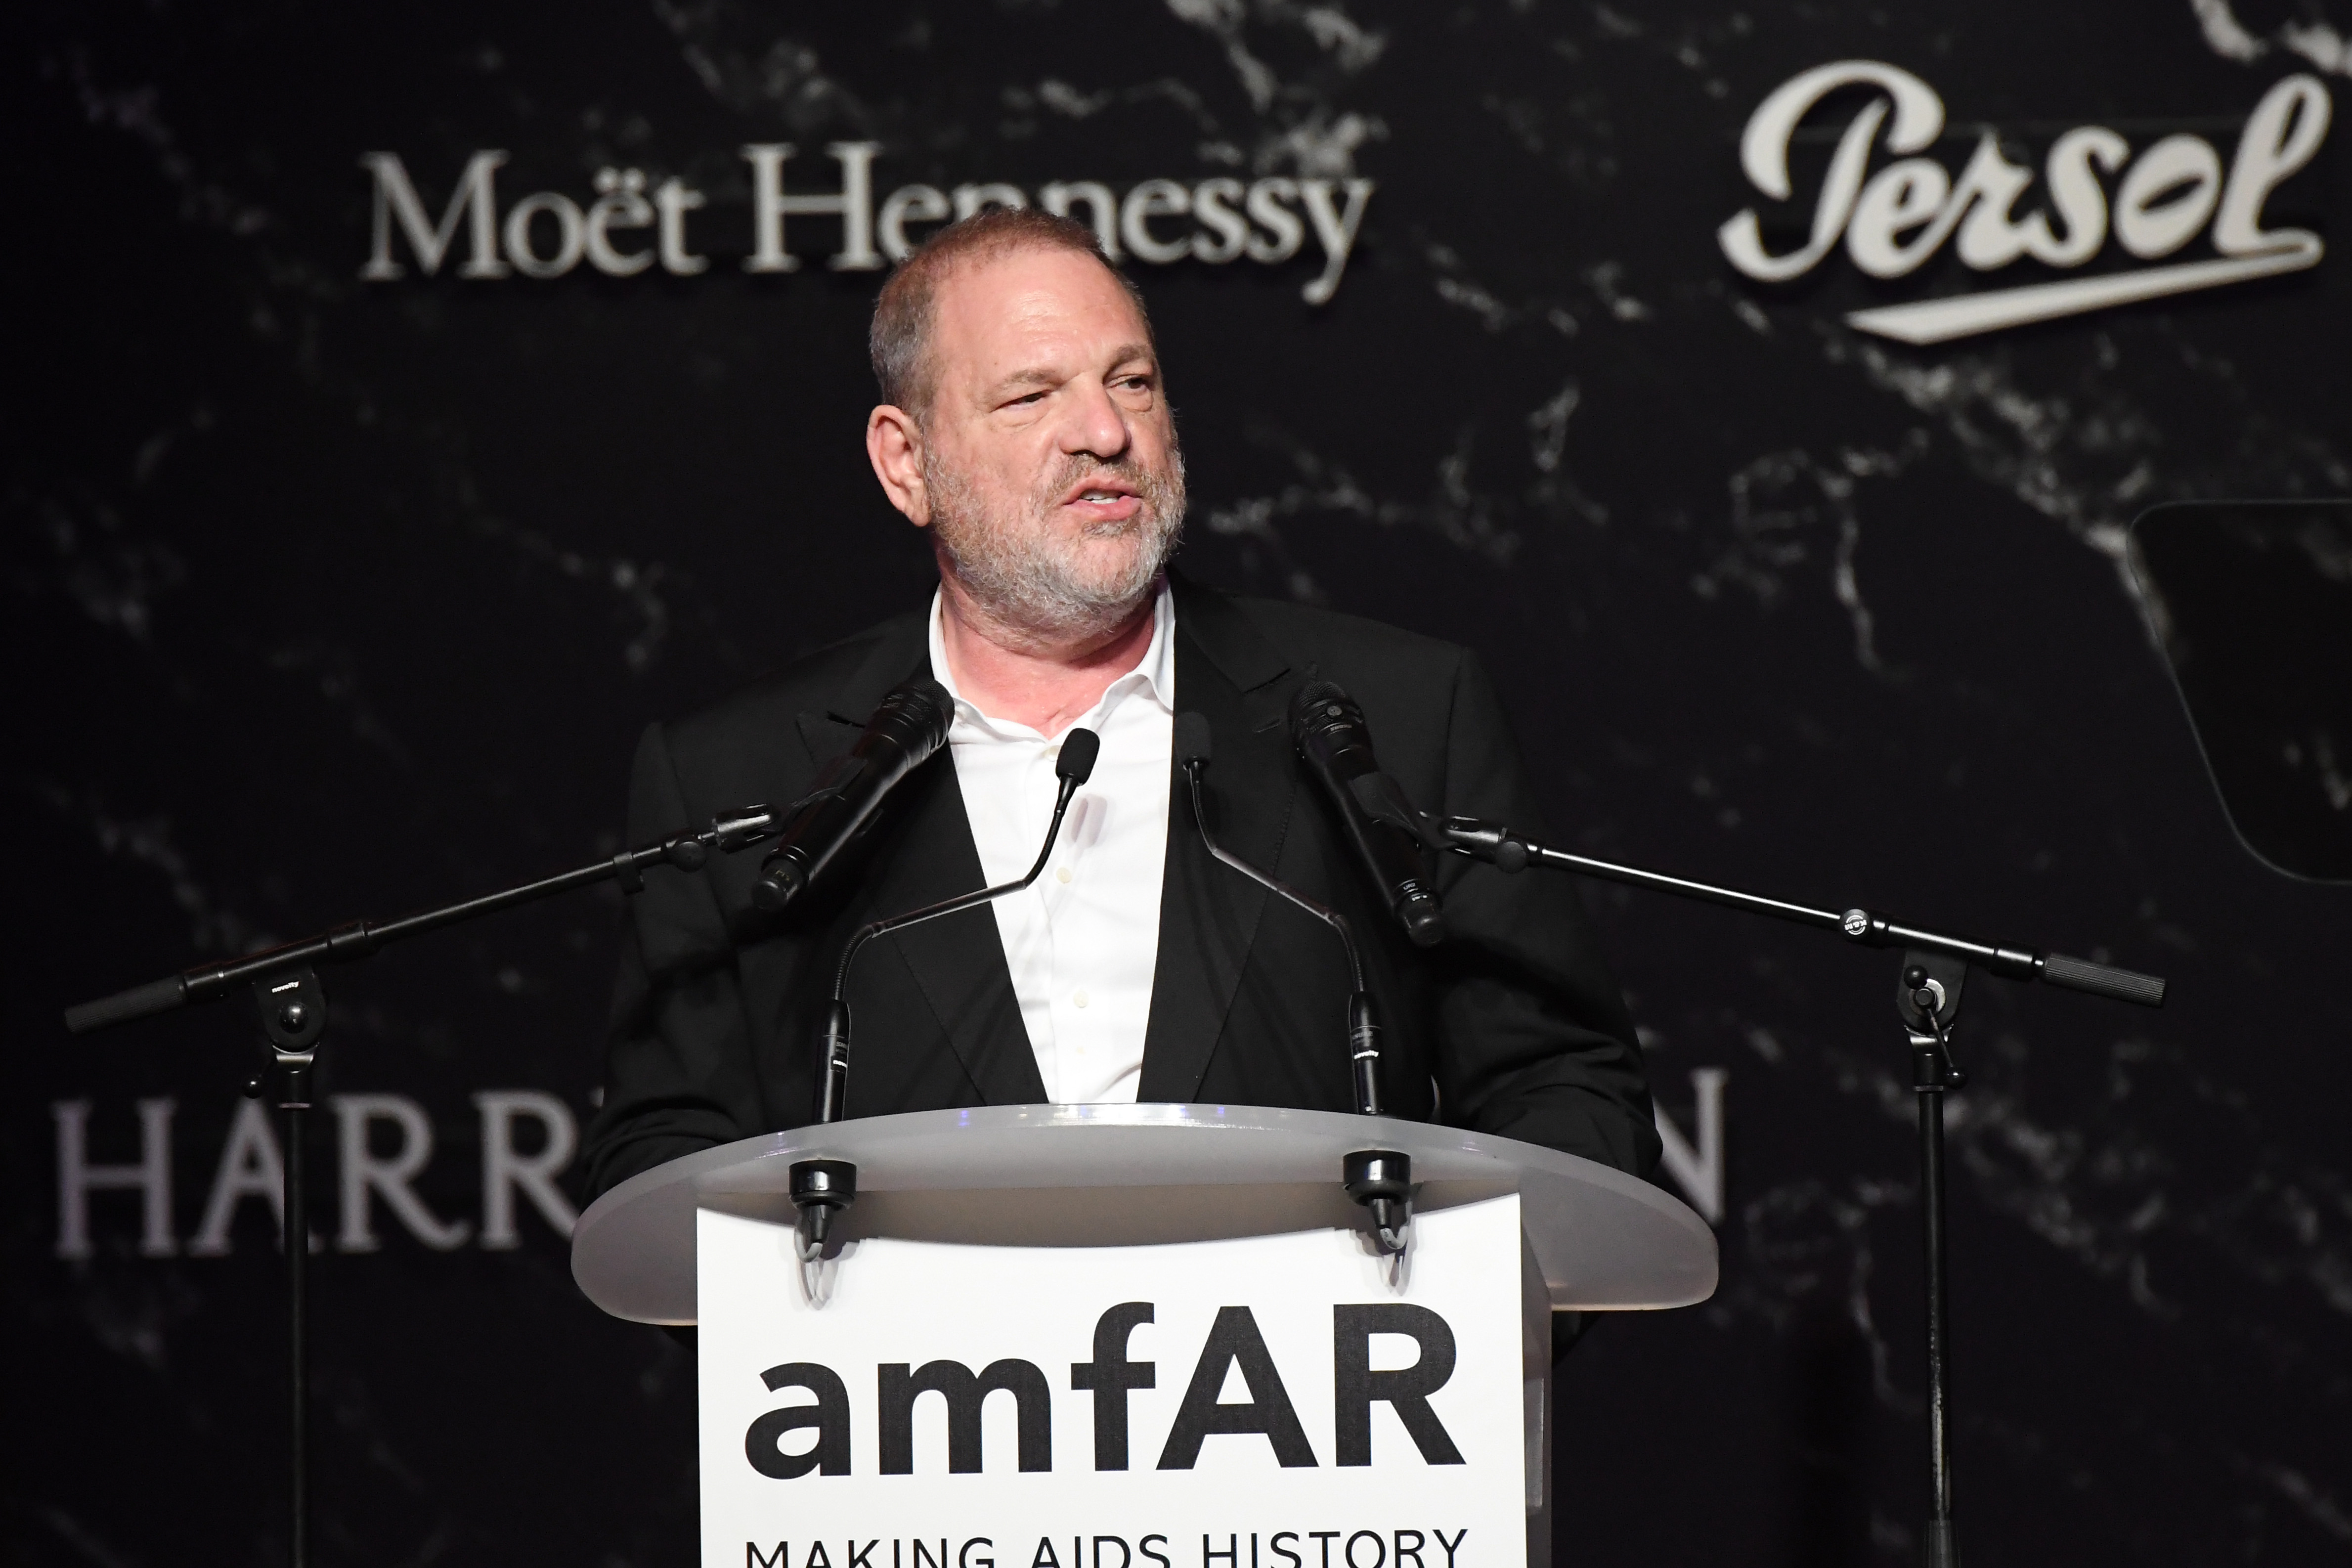 CAP D'ANTIBES, FRANCE - MAY 25:  Harvey Weinstein speaks on stage during the amfAR Gala Cannes 2017 at Hotel du Cap-Eden-Roc on May 25, 2017 in Cap d'Antibes, France.  (Photo by Dominique Charriau/Getty Images)